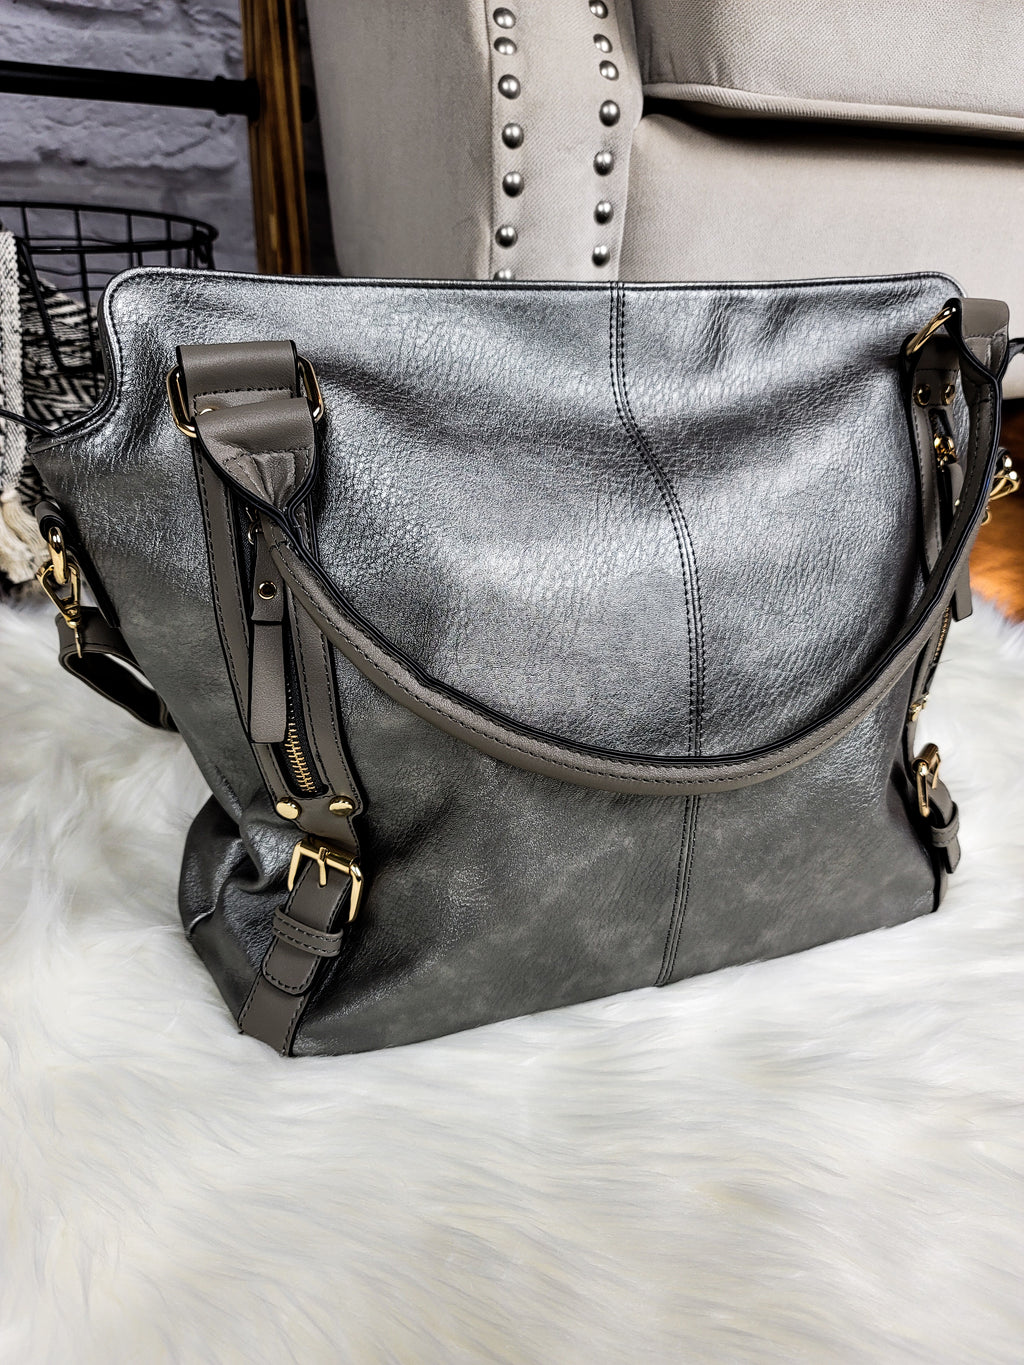 I Heard a Rumor Gray Faux Leather Bag